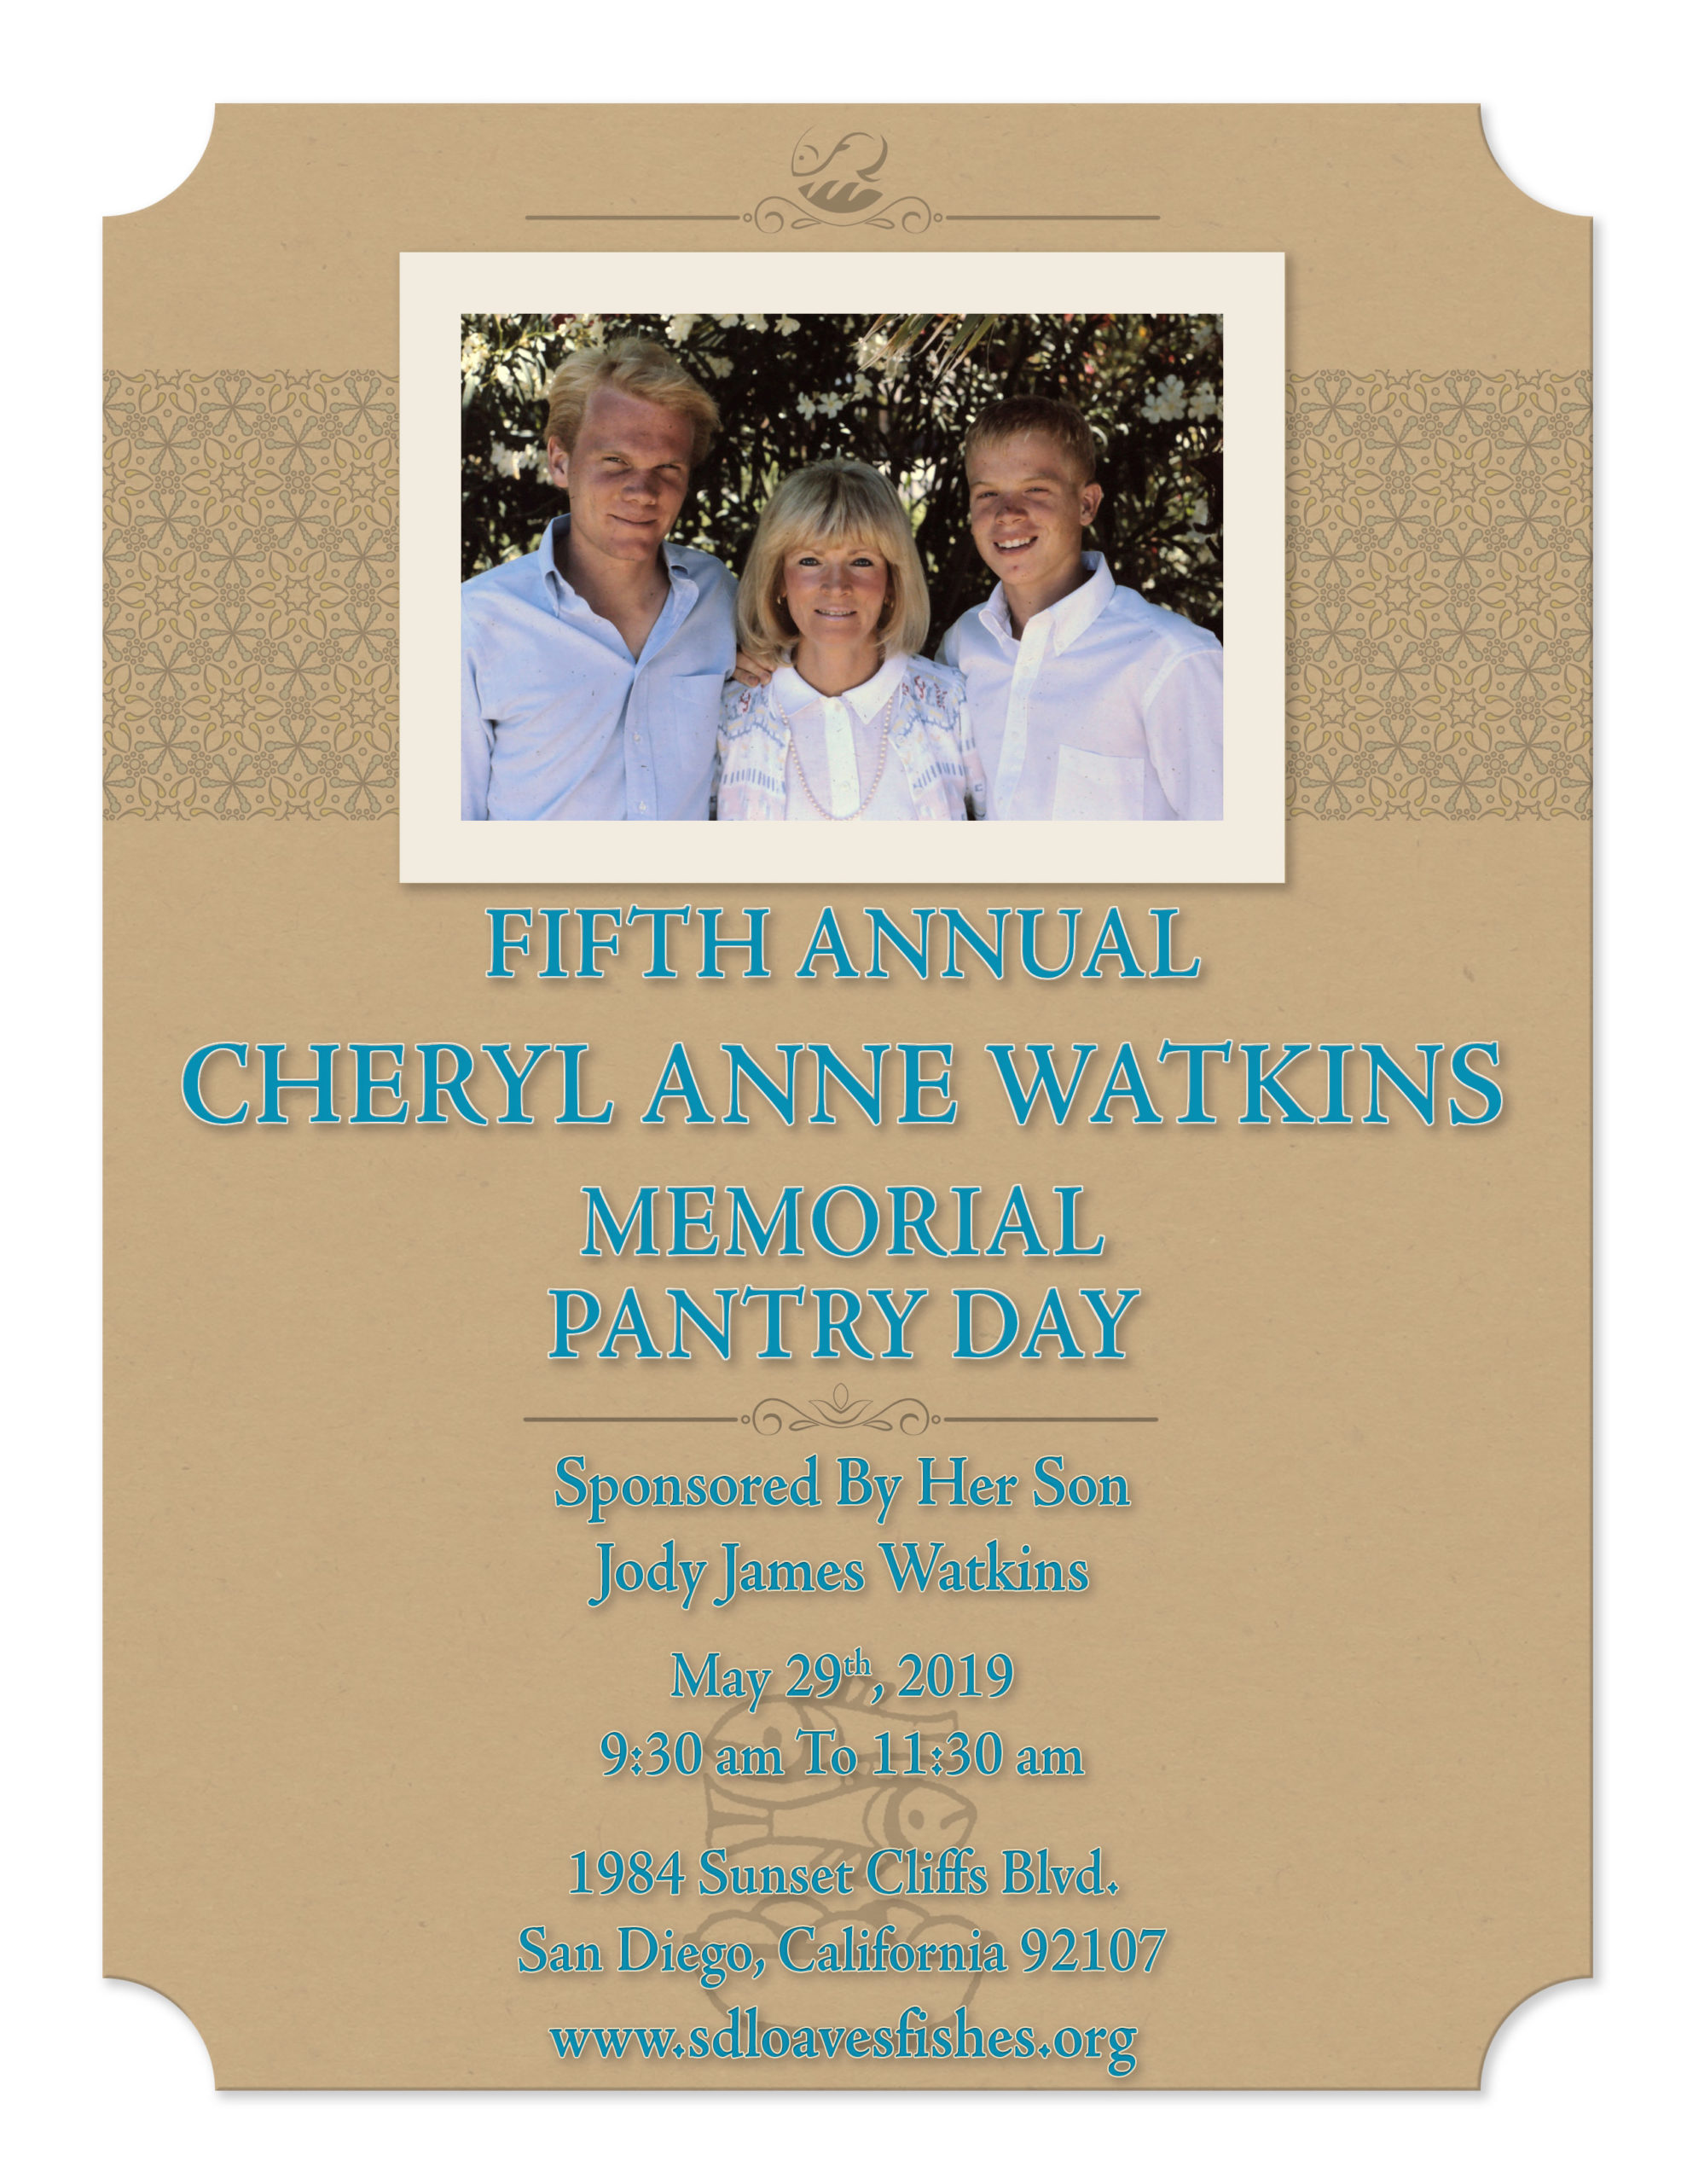 5th Annual Cheryl Anne Watkins Memorial Pantry Day